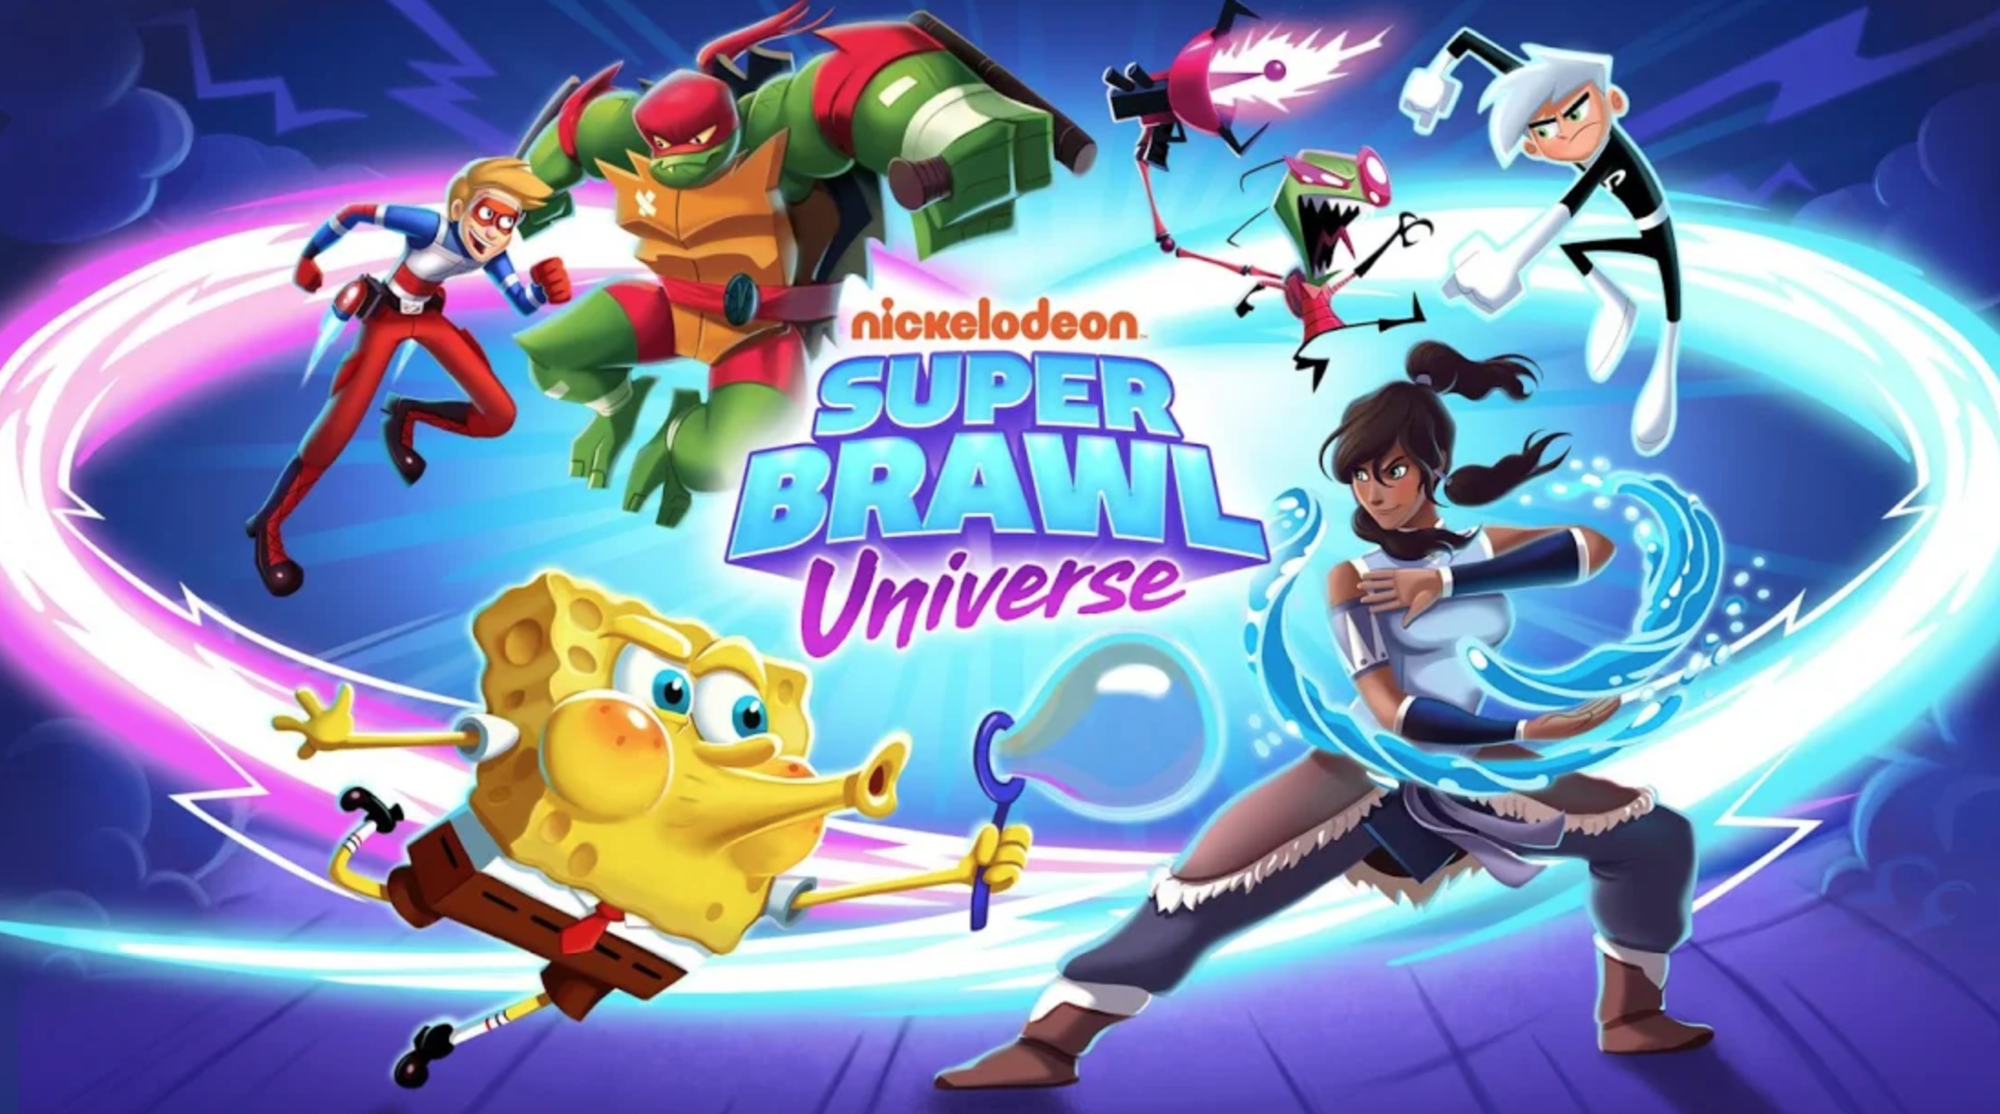 super brawl universe